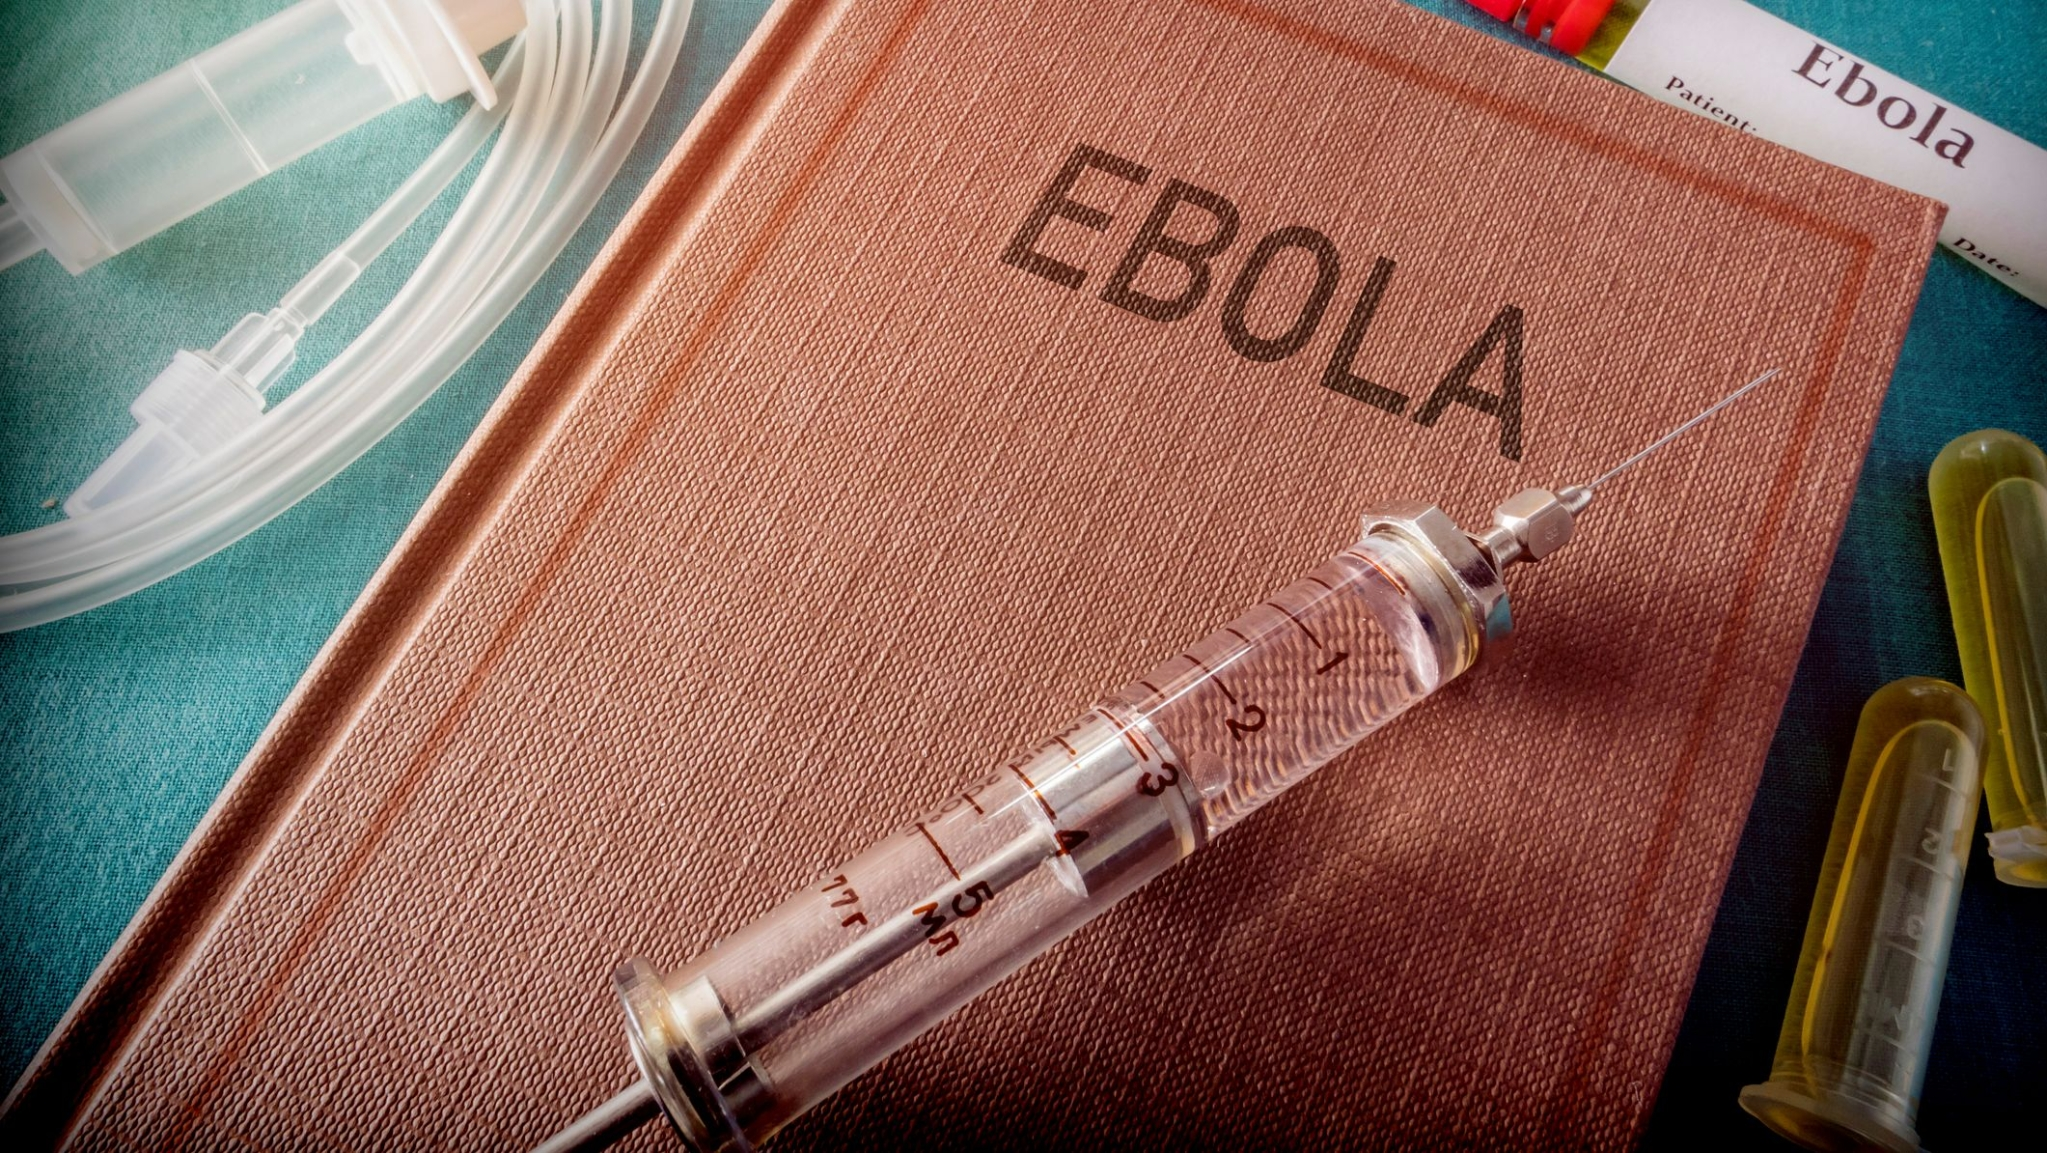 From Ebola to HIV: Here's WHO's List of 10 Global Health Threats